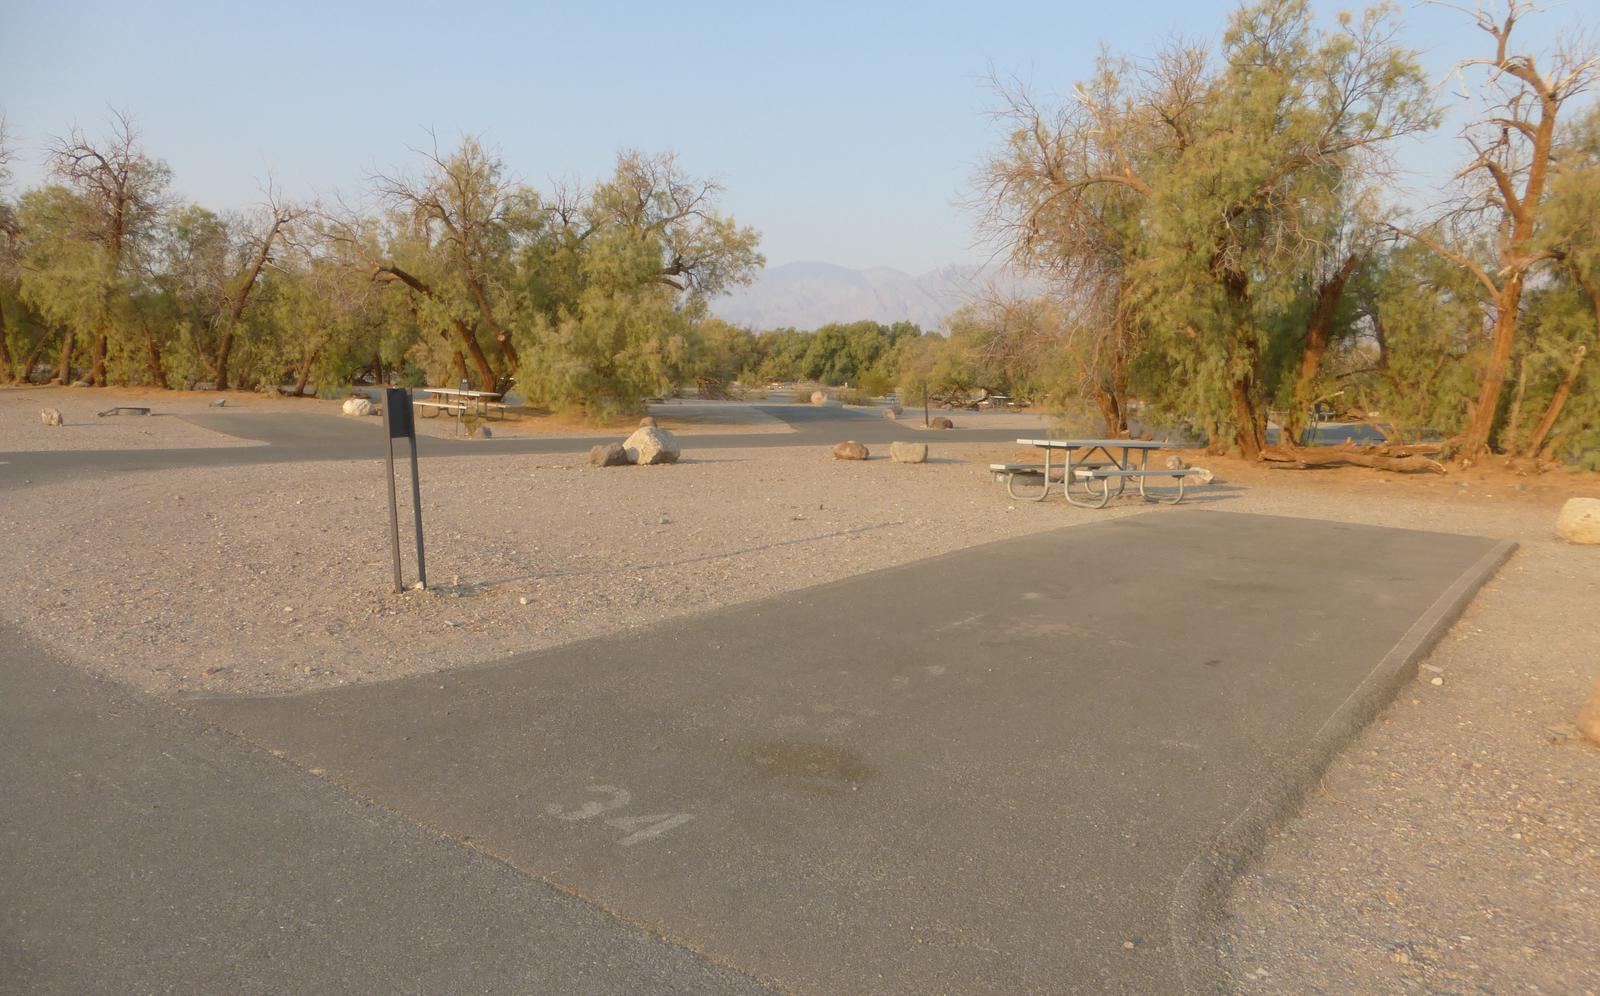 Furnace Creek Campground standard nonelectric site #34 with picnic table and fire ring.